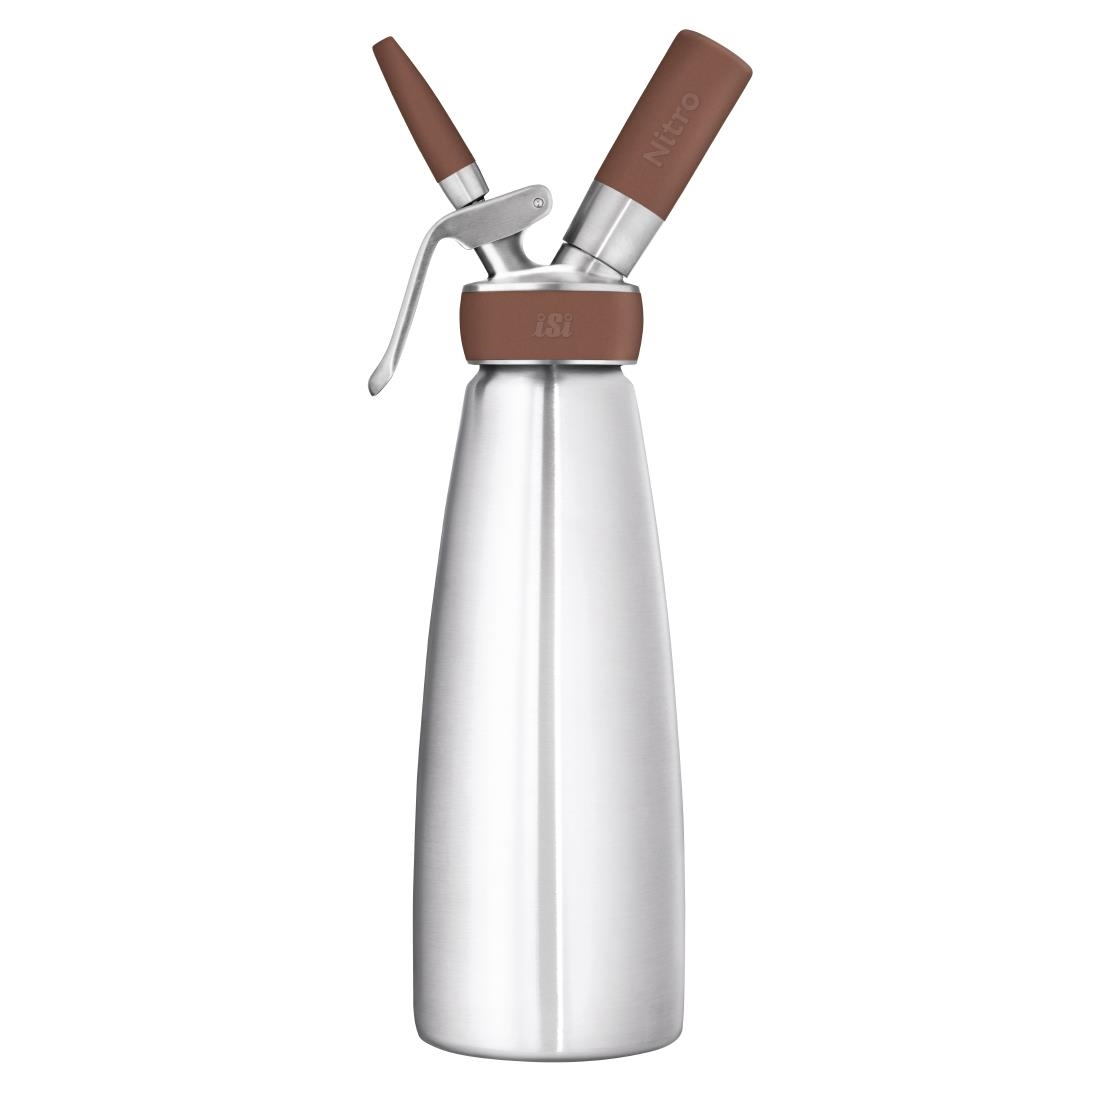 Image of iSi Nitro Coffee Dispenser 1Ltr